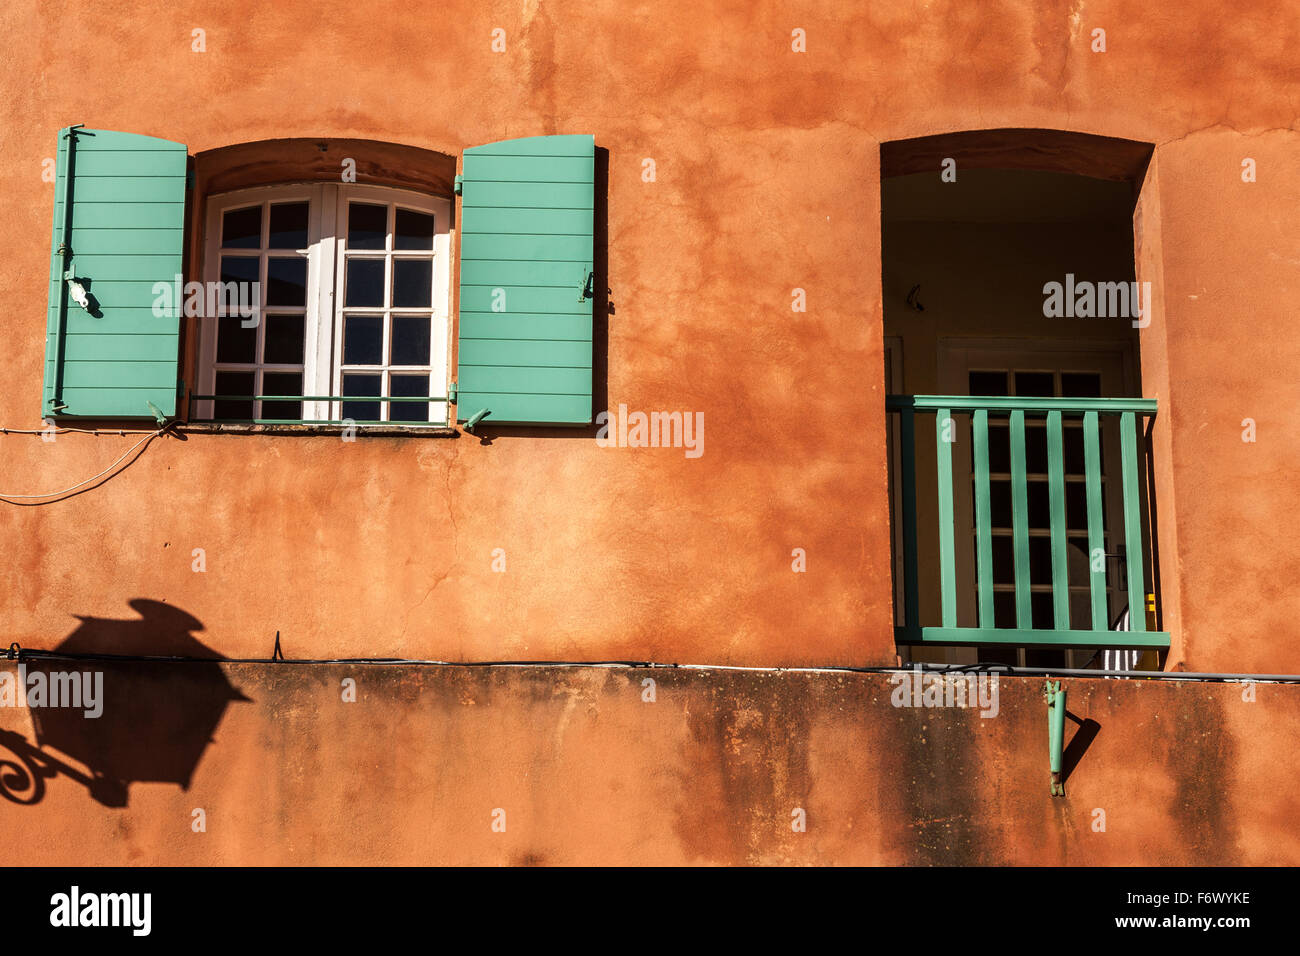 Sunbaked building detail window and balcony - Stock Image